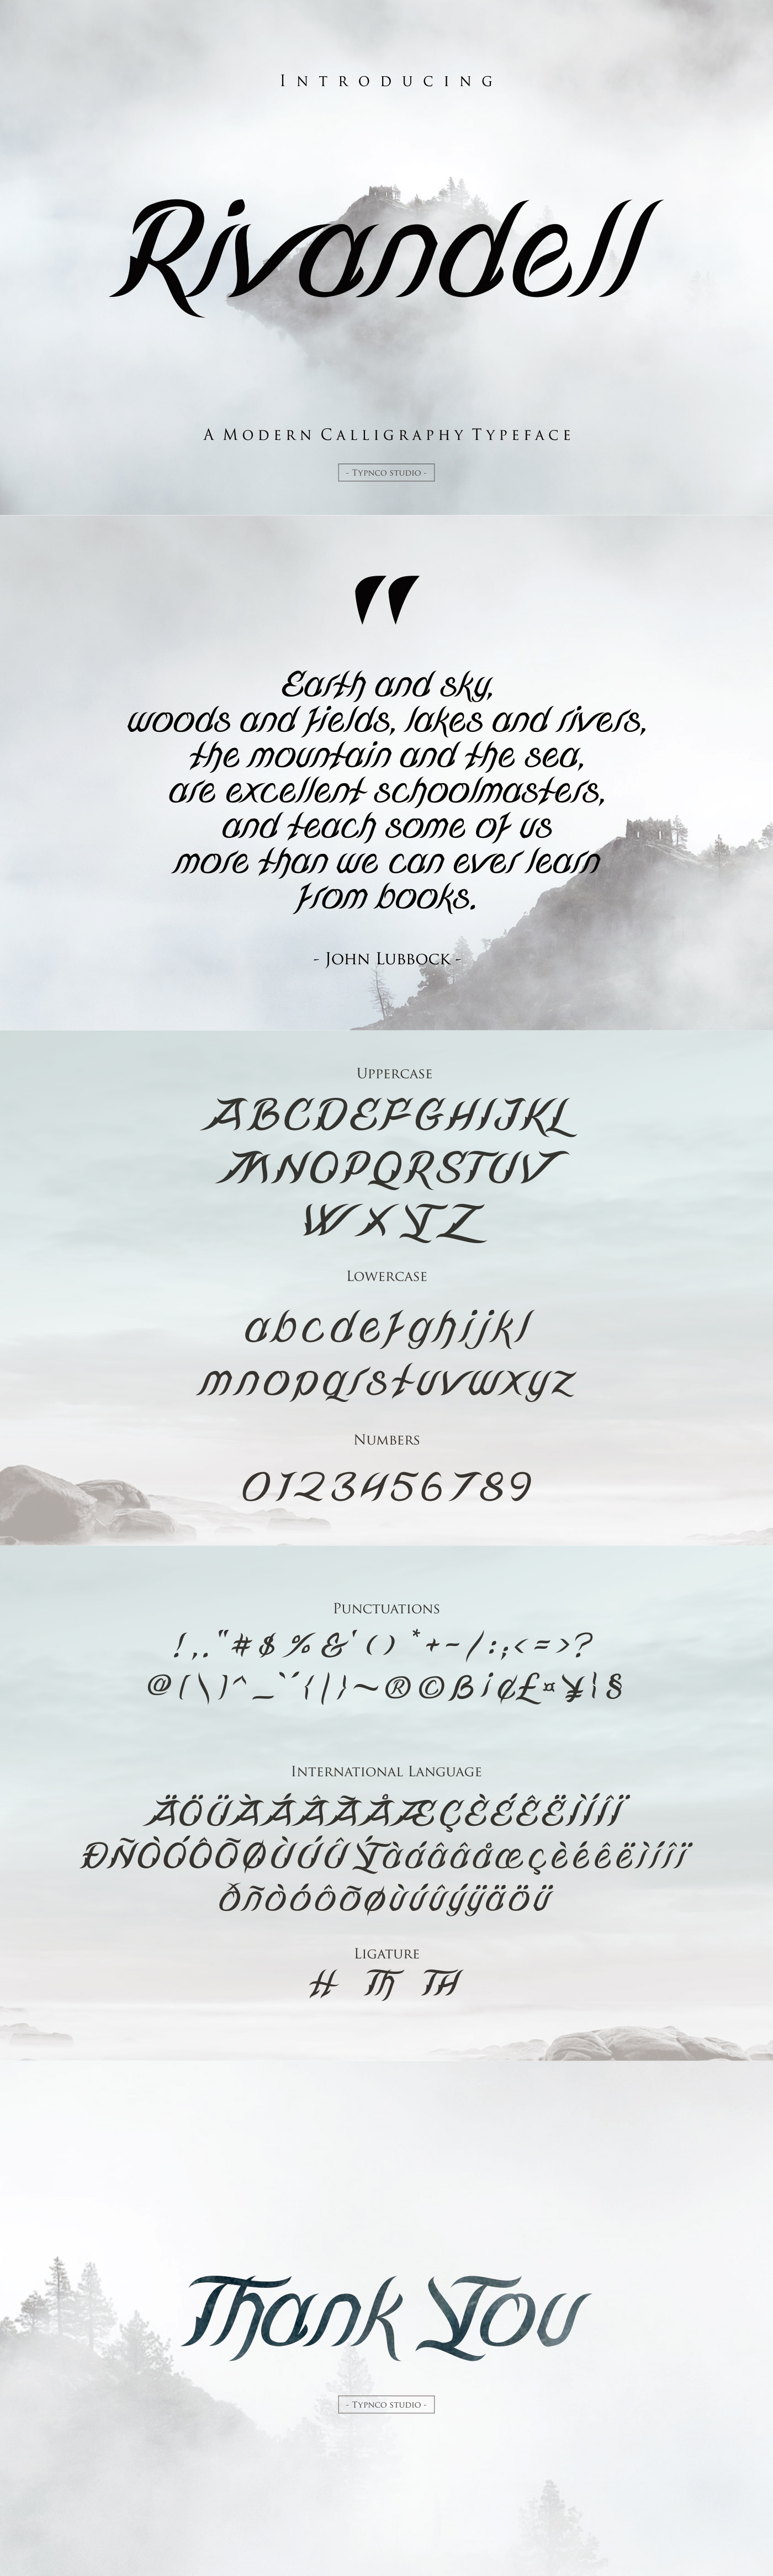 It is a cursive typeface inspired by royal handwriting and fiction readings by Typnco Studio.